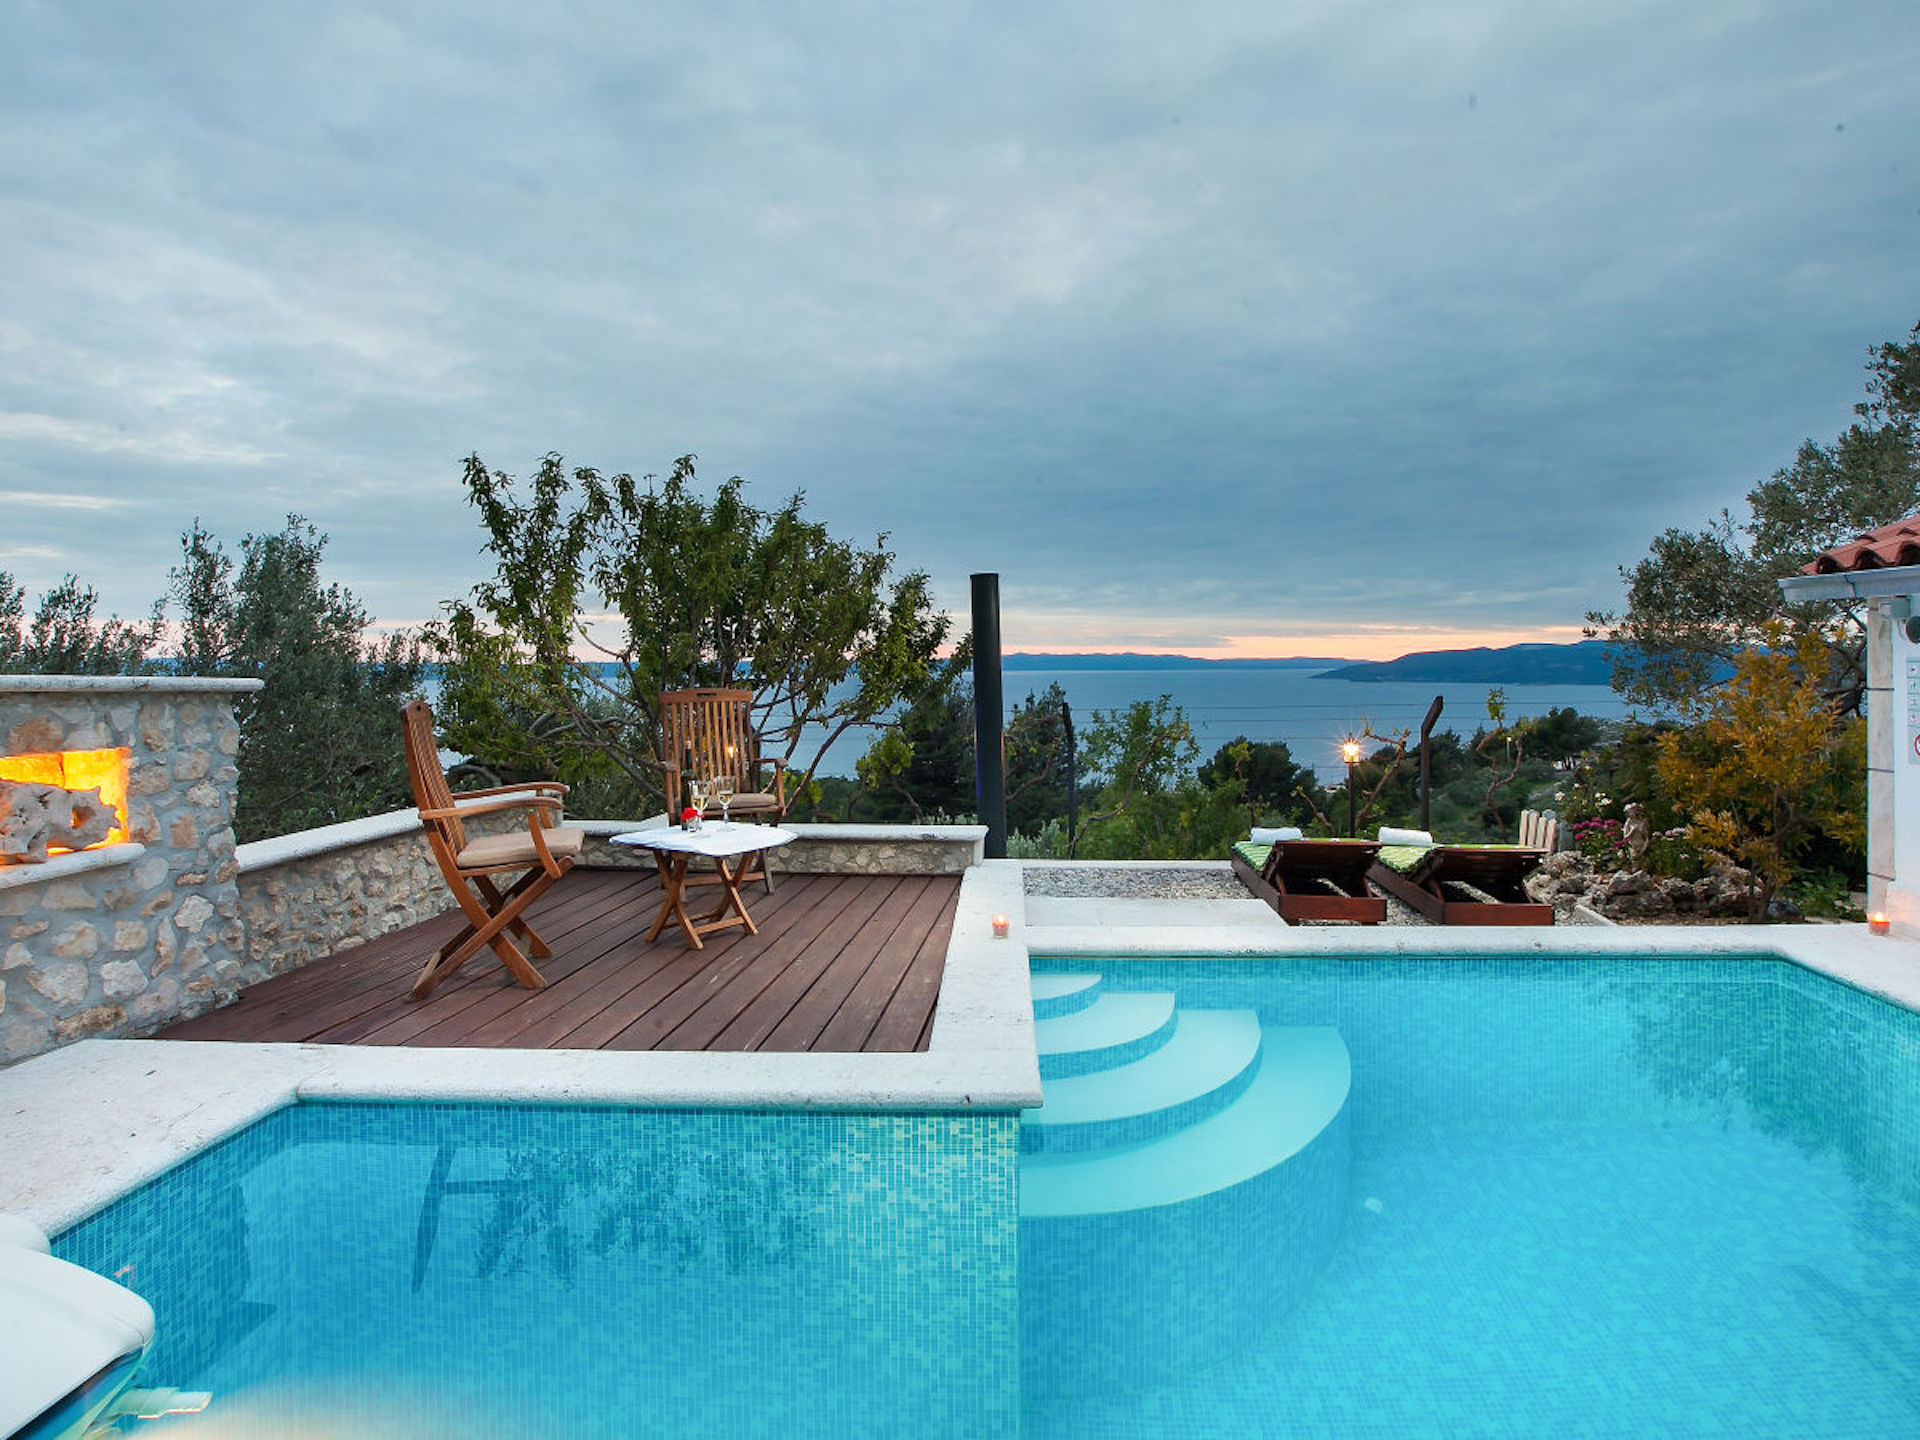 2a ferienhaus dalmatien mit pool villa dalmatia with pool and sea view. Black Bedroom Furniture Sets. Home Design Ideas